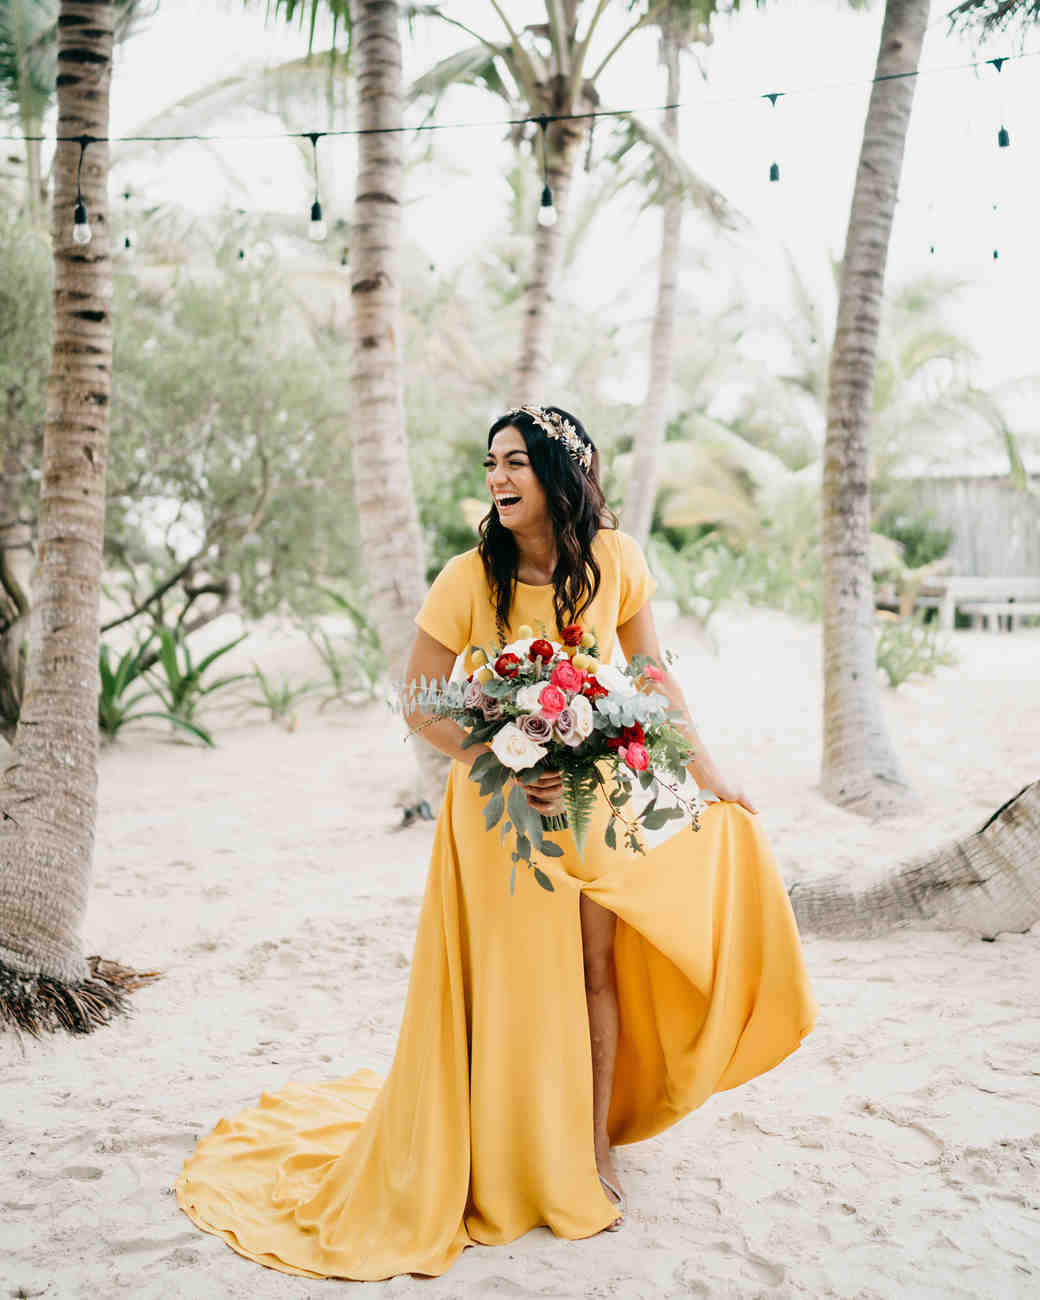 Beach Wedding Gown: 27 Stunning Beach Wedding Dresses